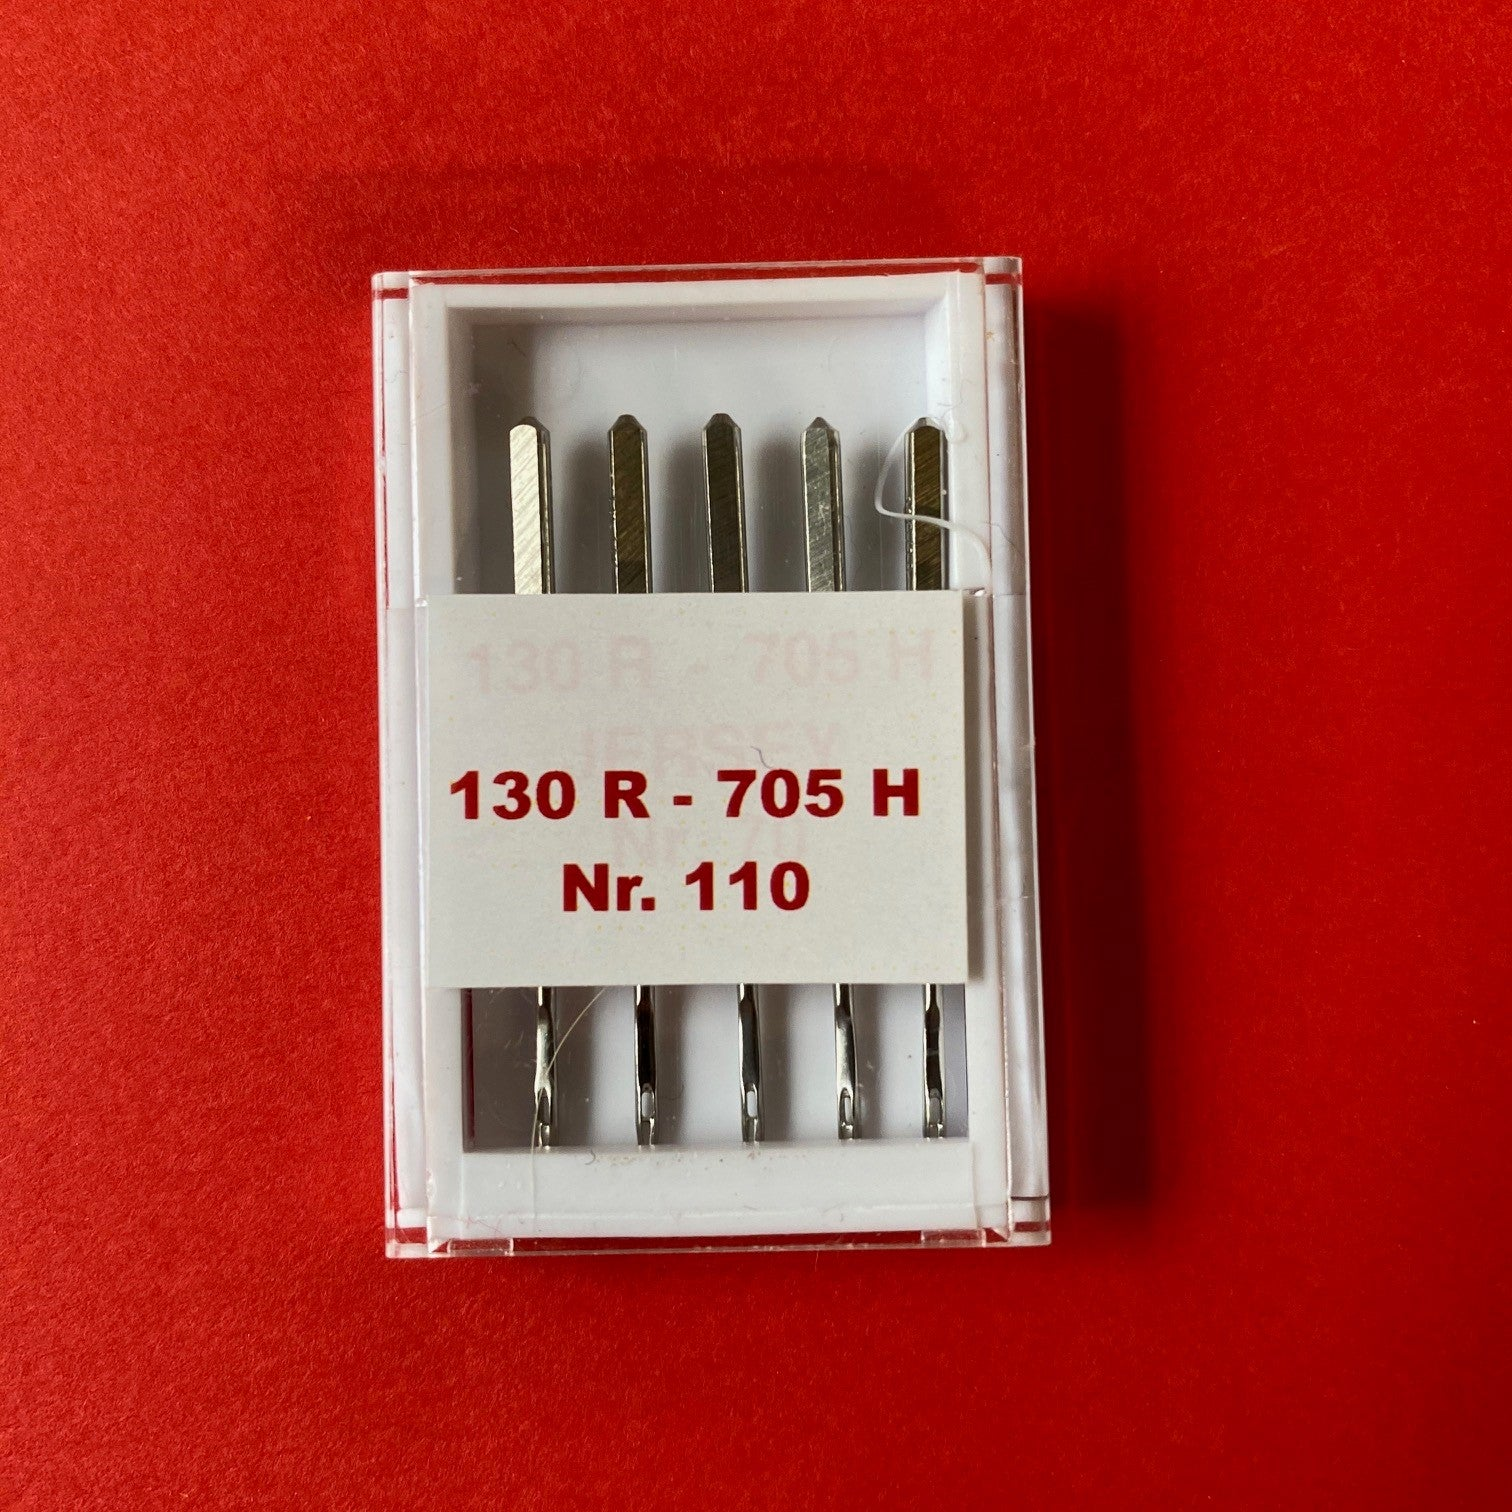 Singer Outlet Universal Sewing Machine Needles - Size 110 (pack of 5)